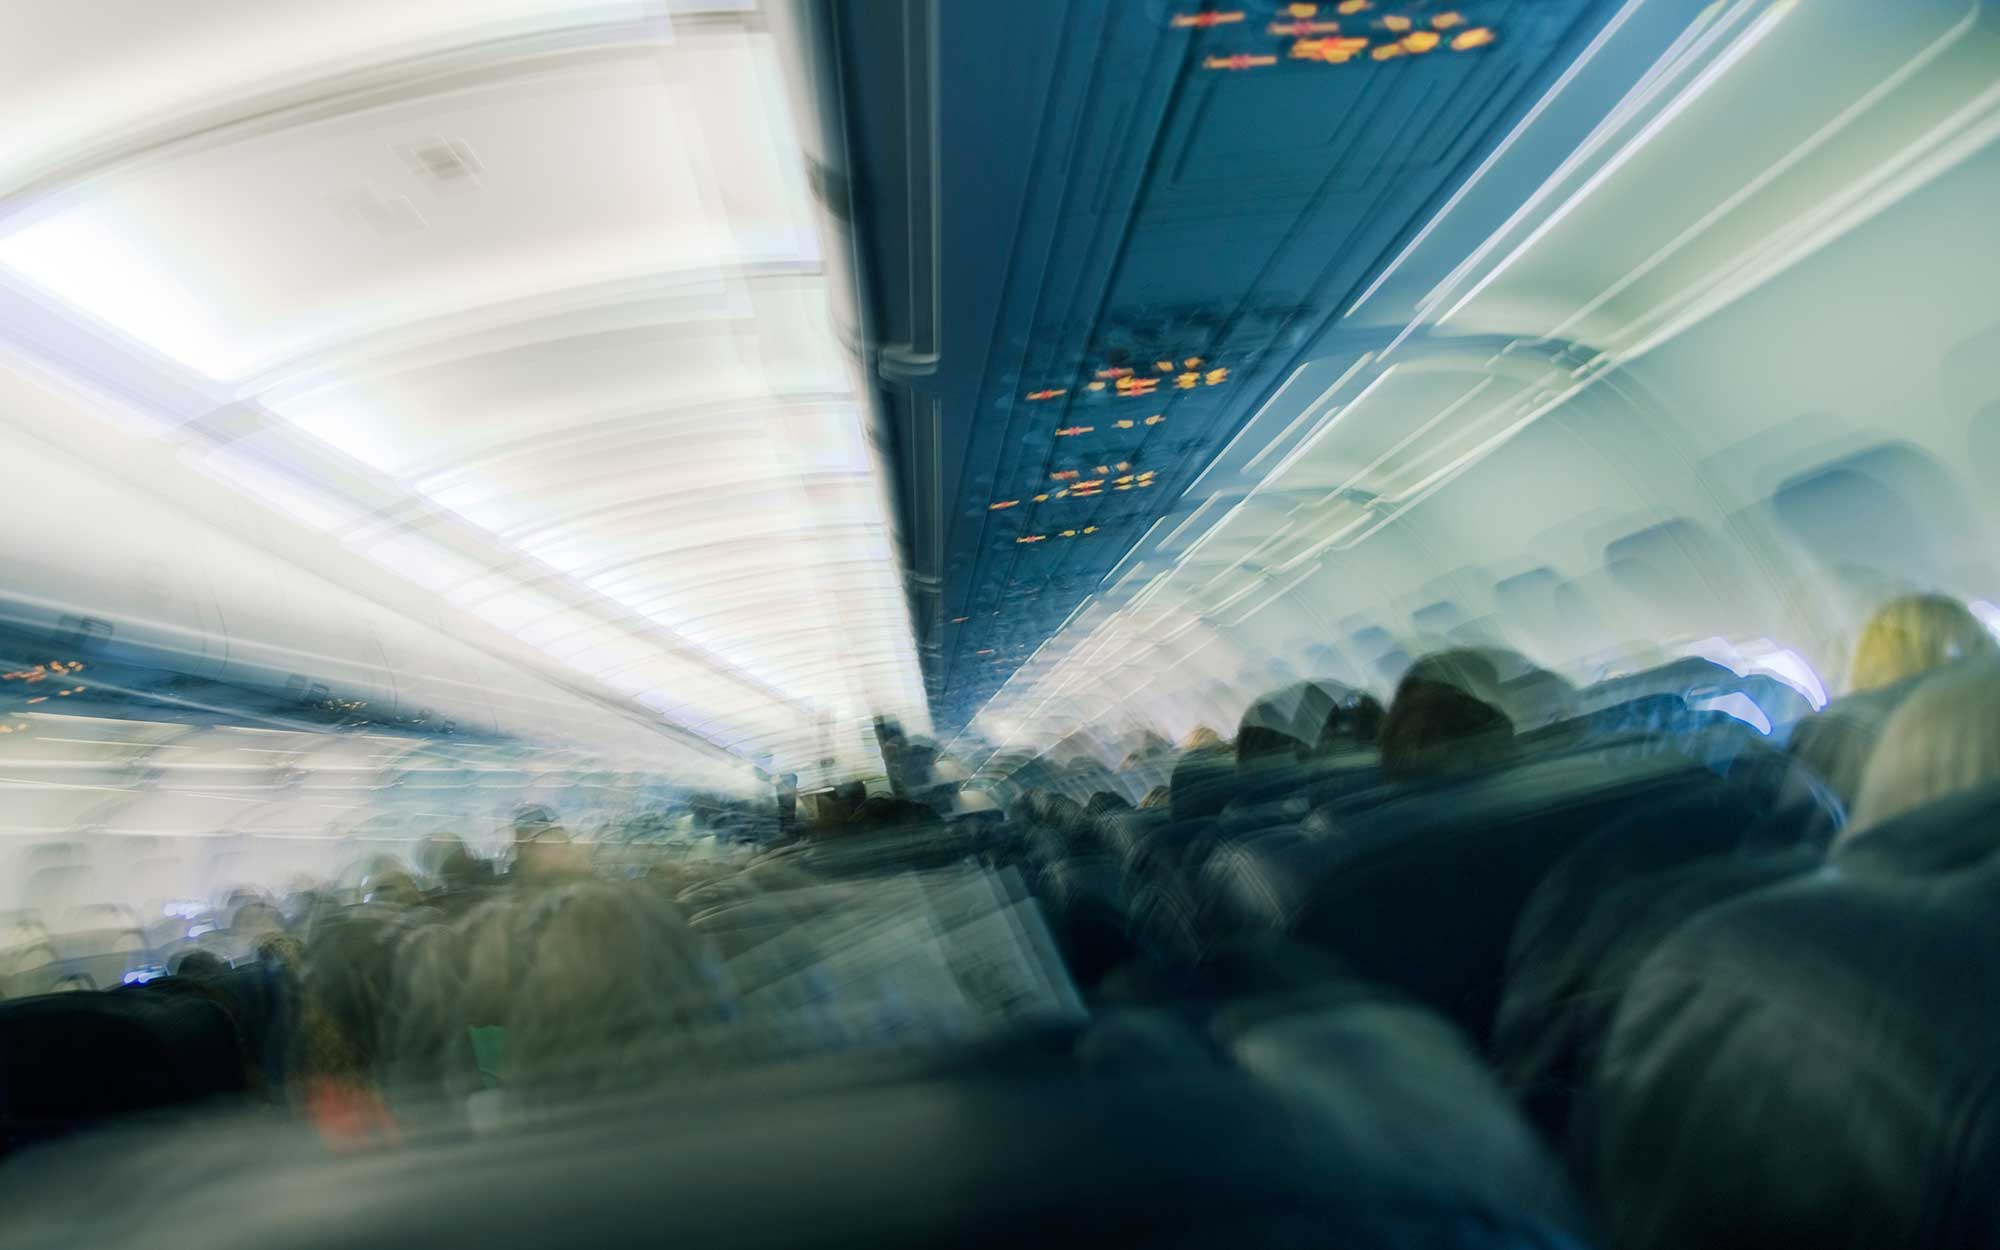 Seated passengers in aeroplane cabin, rear view (multiple exposure)